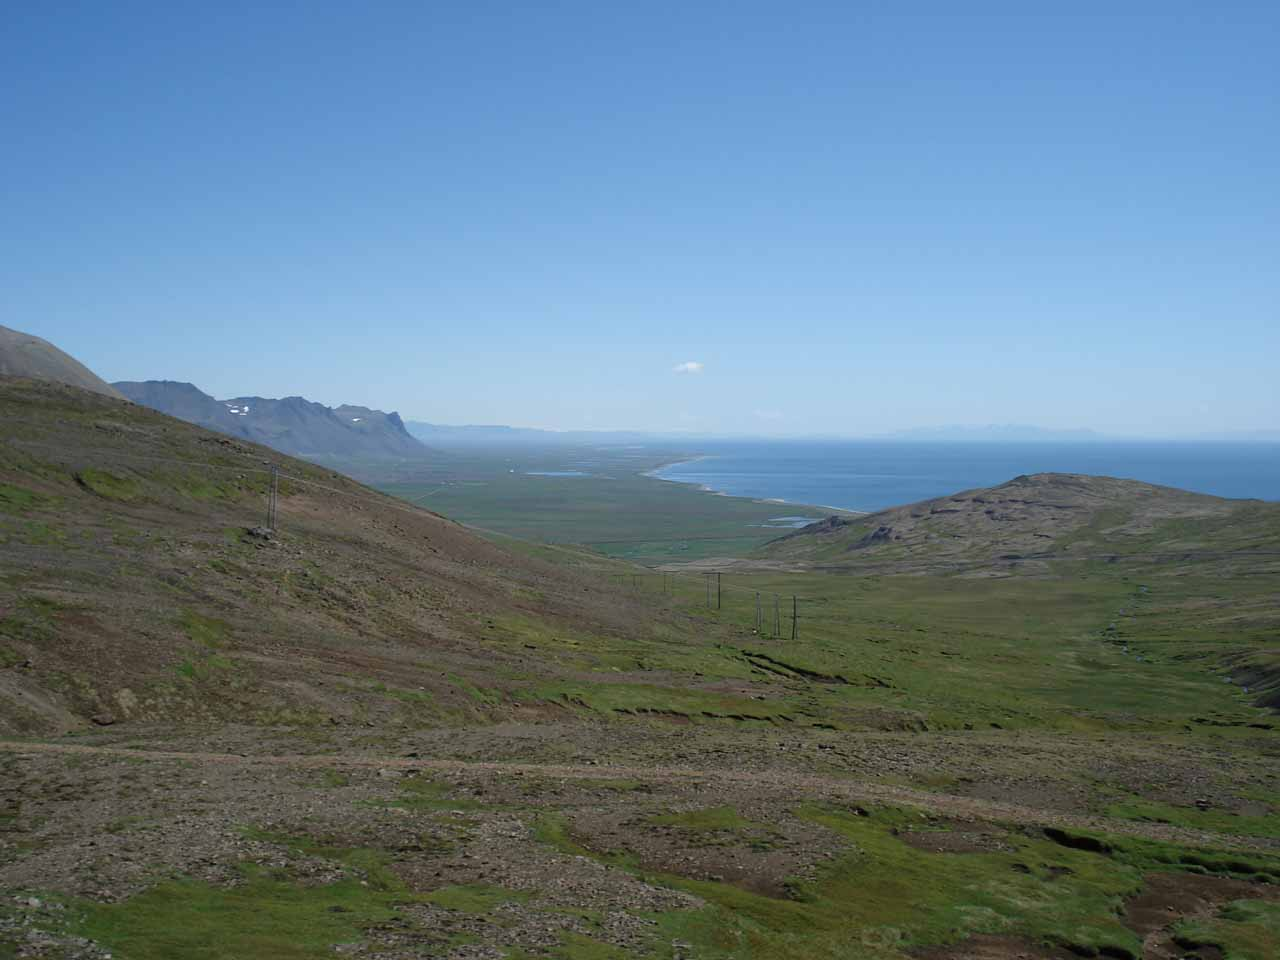 Looking back towards the southern side of the Snæfellsnes Peninsula while we were cutting across